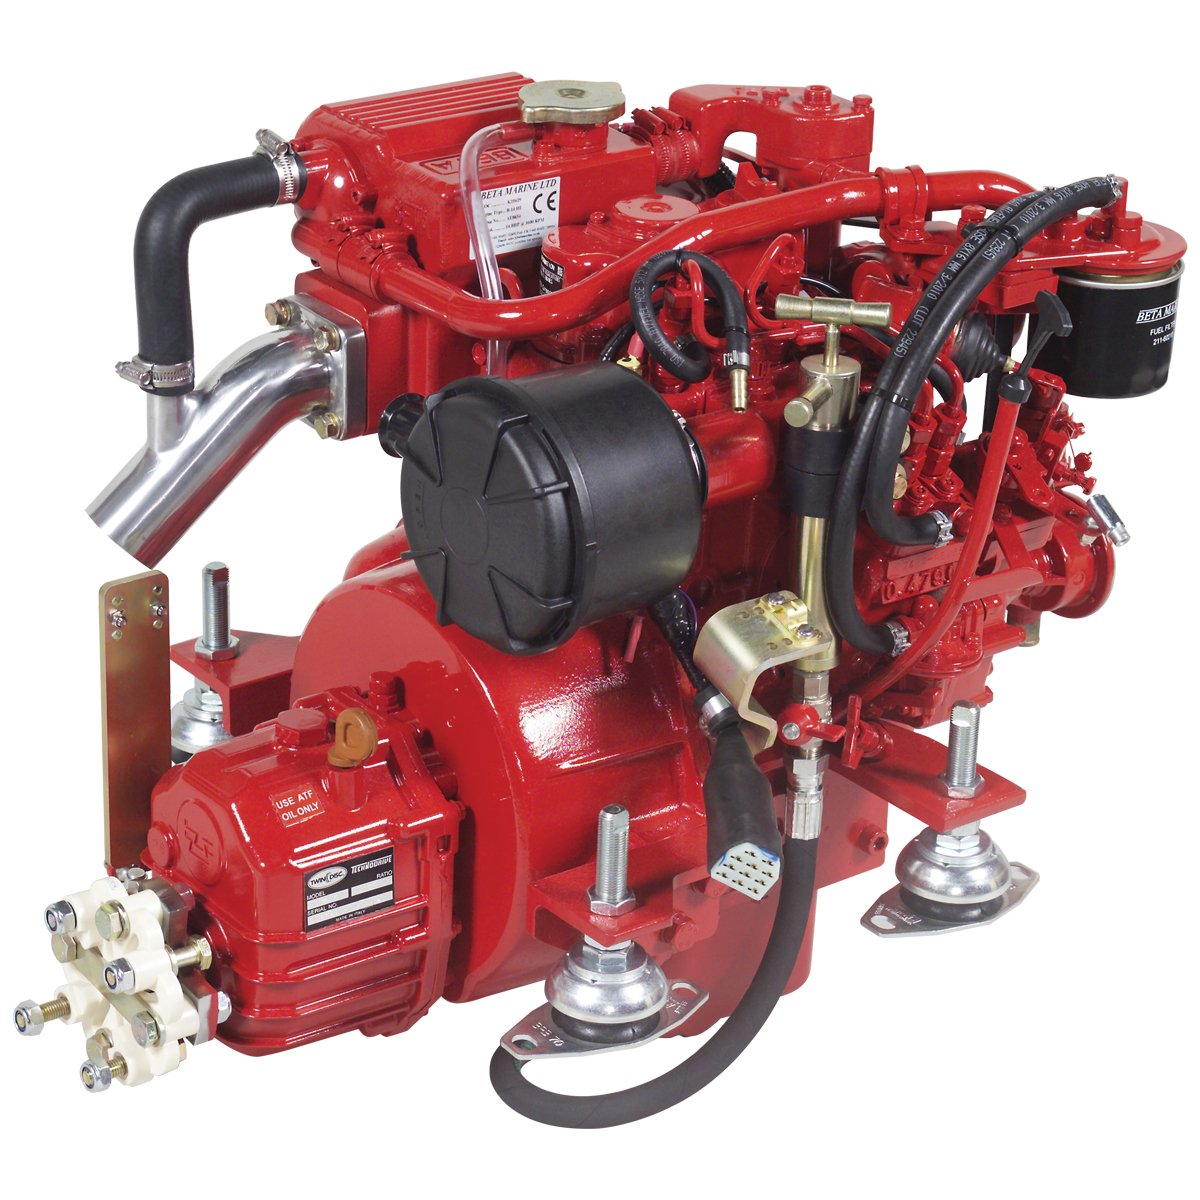 Beta Marine USA - marine diesel propulsion engines - Beta 14 heat exchanger engine